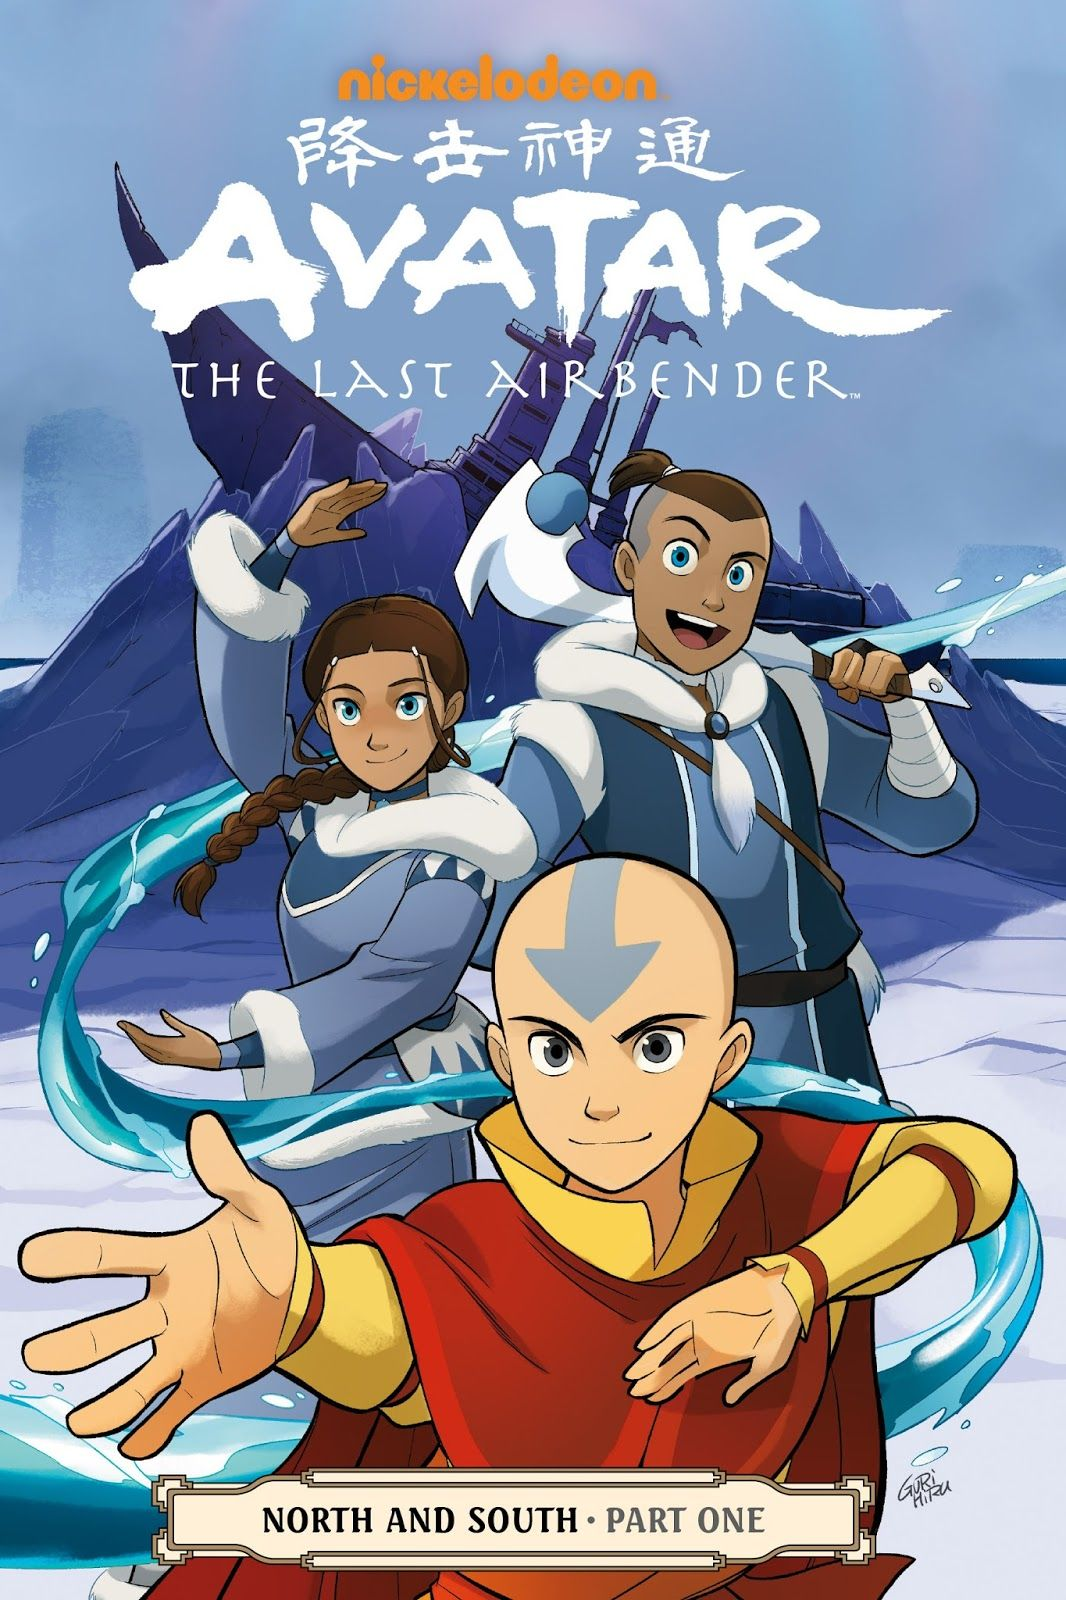 Avatar The Last Airbender Nickelodeon : avatar, airbender, nickelodeon, Nickelodeon, Avatar:, Airbender, North, South, Issue, Airbe…, Avatar, Airbender,